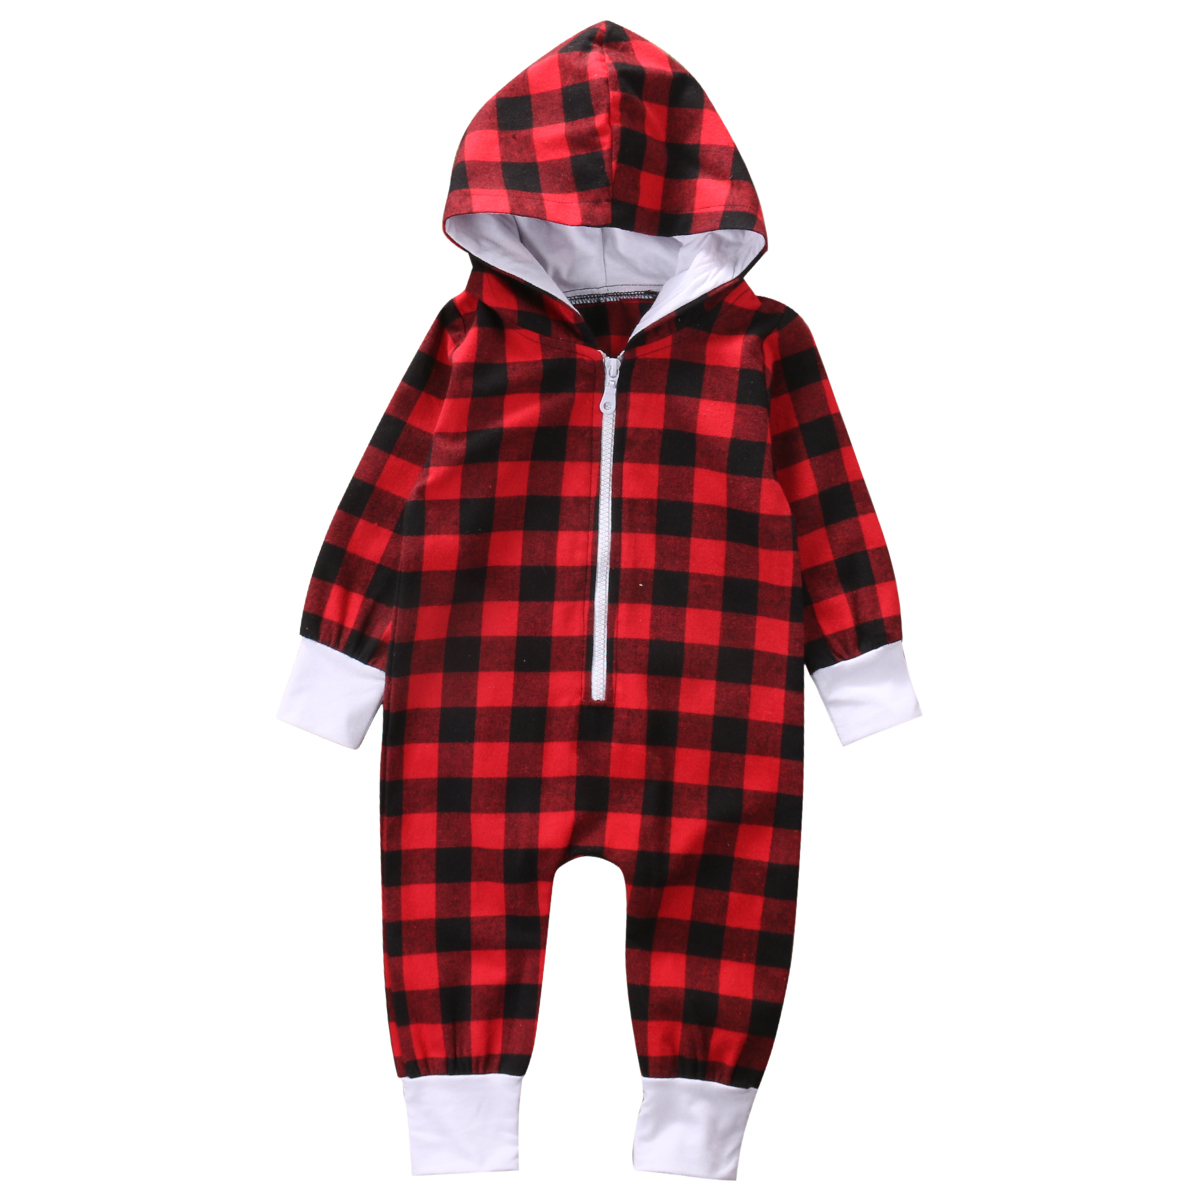 Long Sleeve Plaid Zipper Cute Jumpsuit Rompers Clothing Outfits Newborn Infant Baby Girl Cotton Clothes Romper cotton i must go print newborn infant baby boys clothes summer short sleeve rompers jumpsuit baby romper clothing outfits set